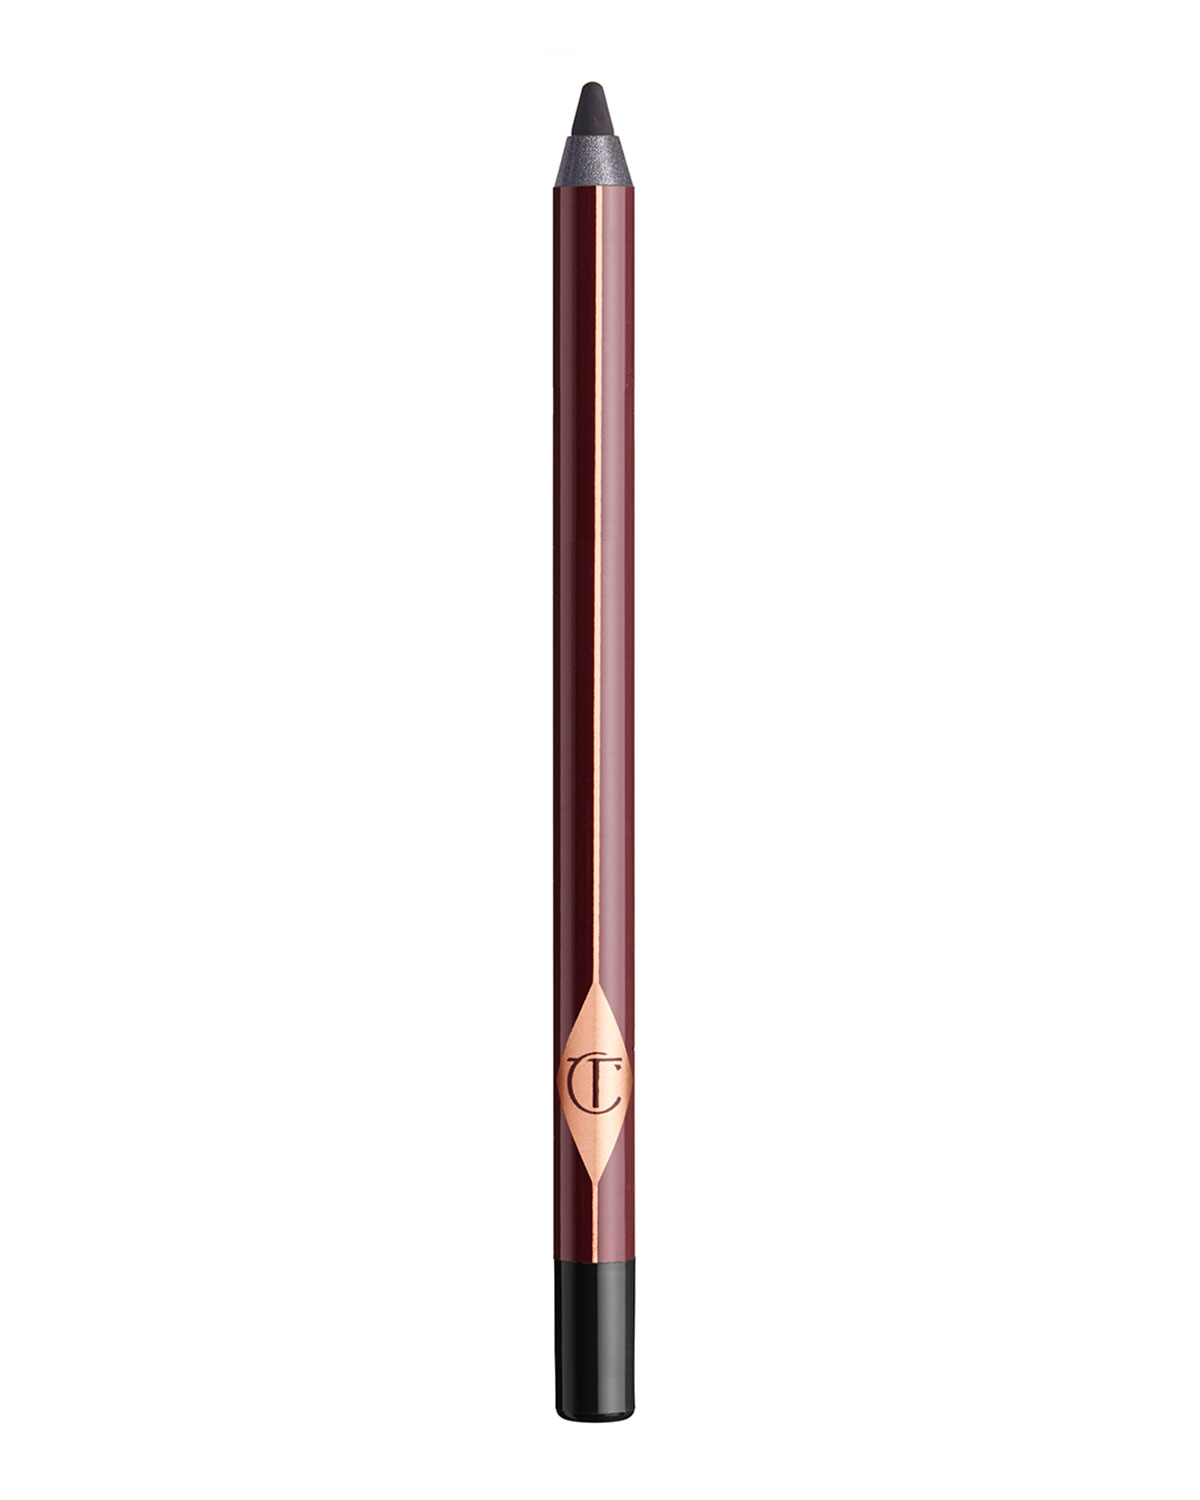 Rock 'N' Kohl Eyeliner Pencil Marlene Midnight .04 Oz, Barbarella Brown